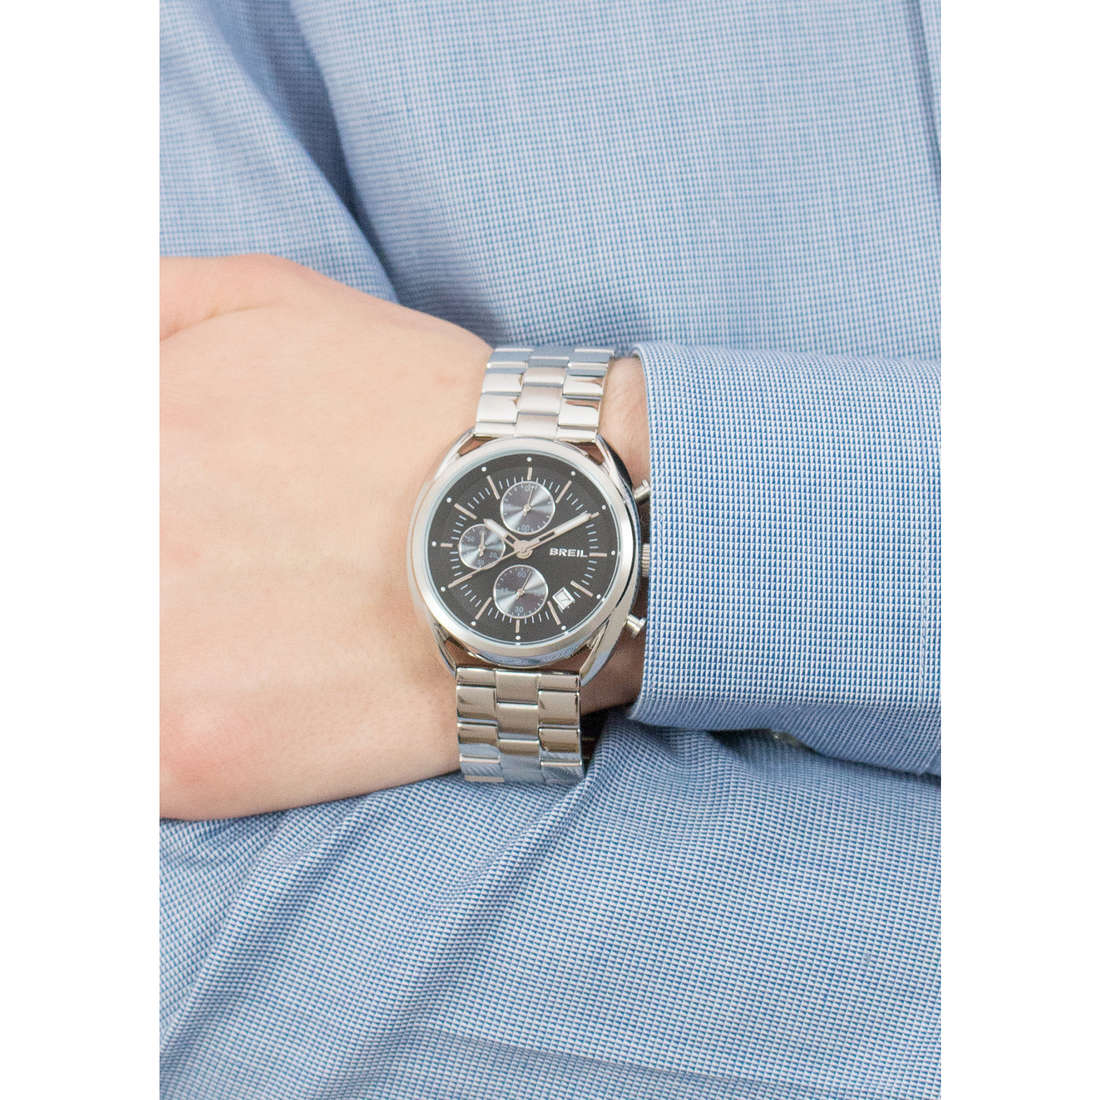 Breil chronographs Beaubourg Extension man TW1514 indosso